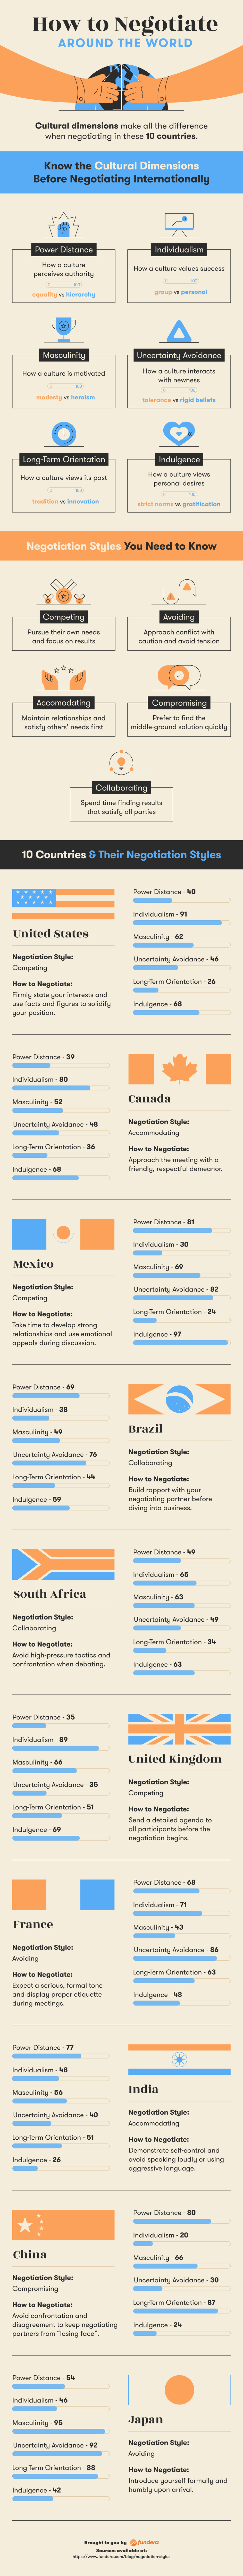 international business negotiation styles